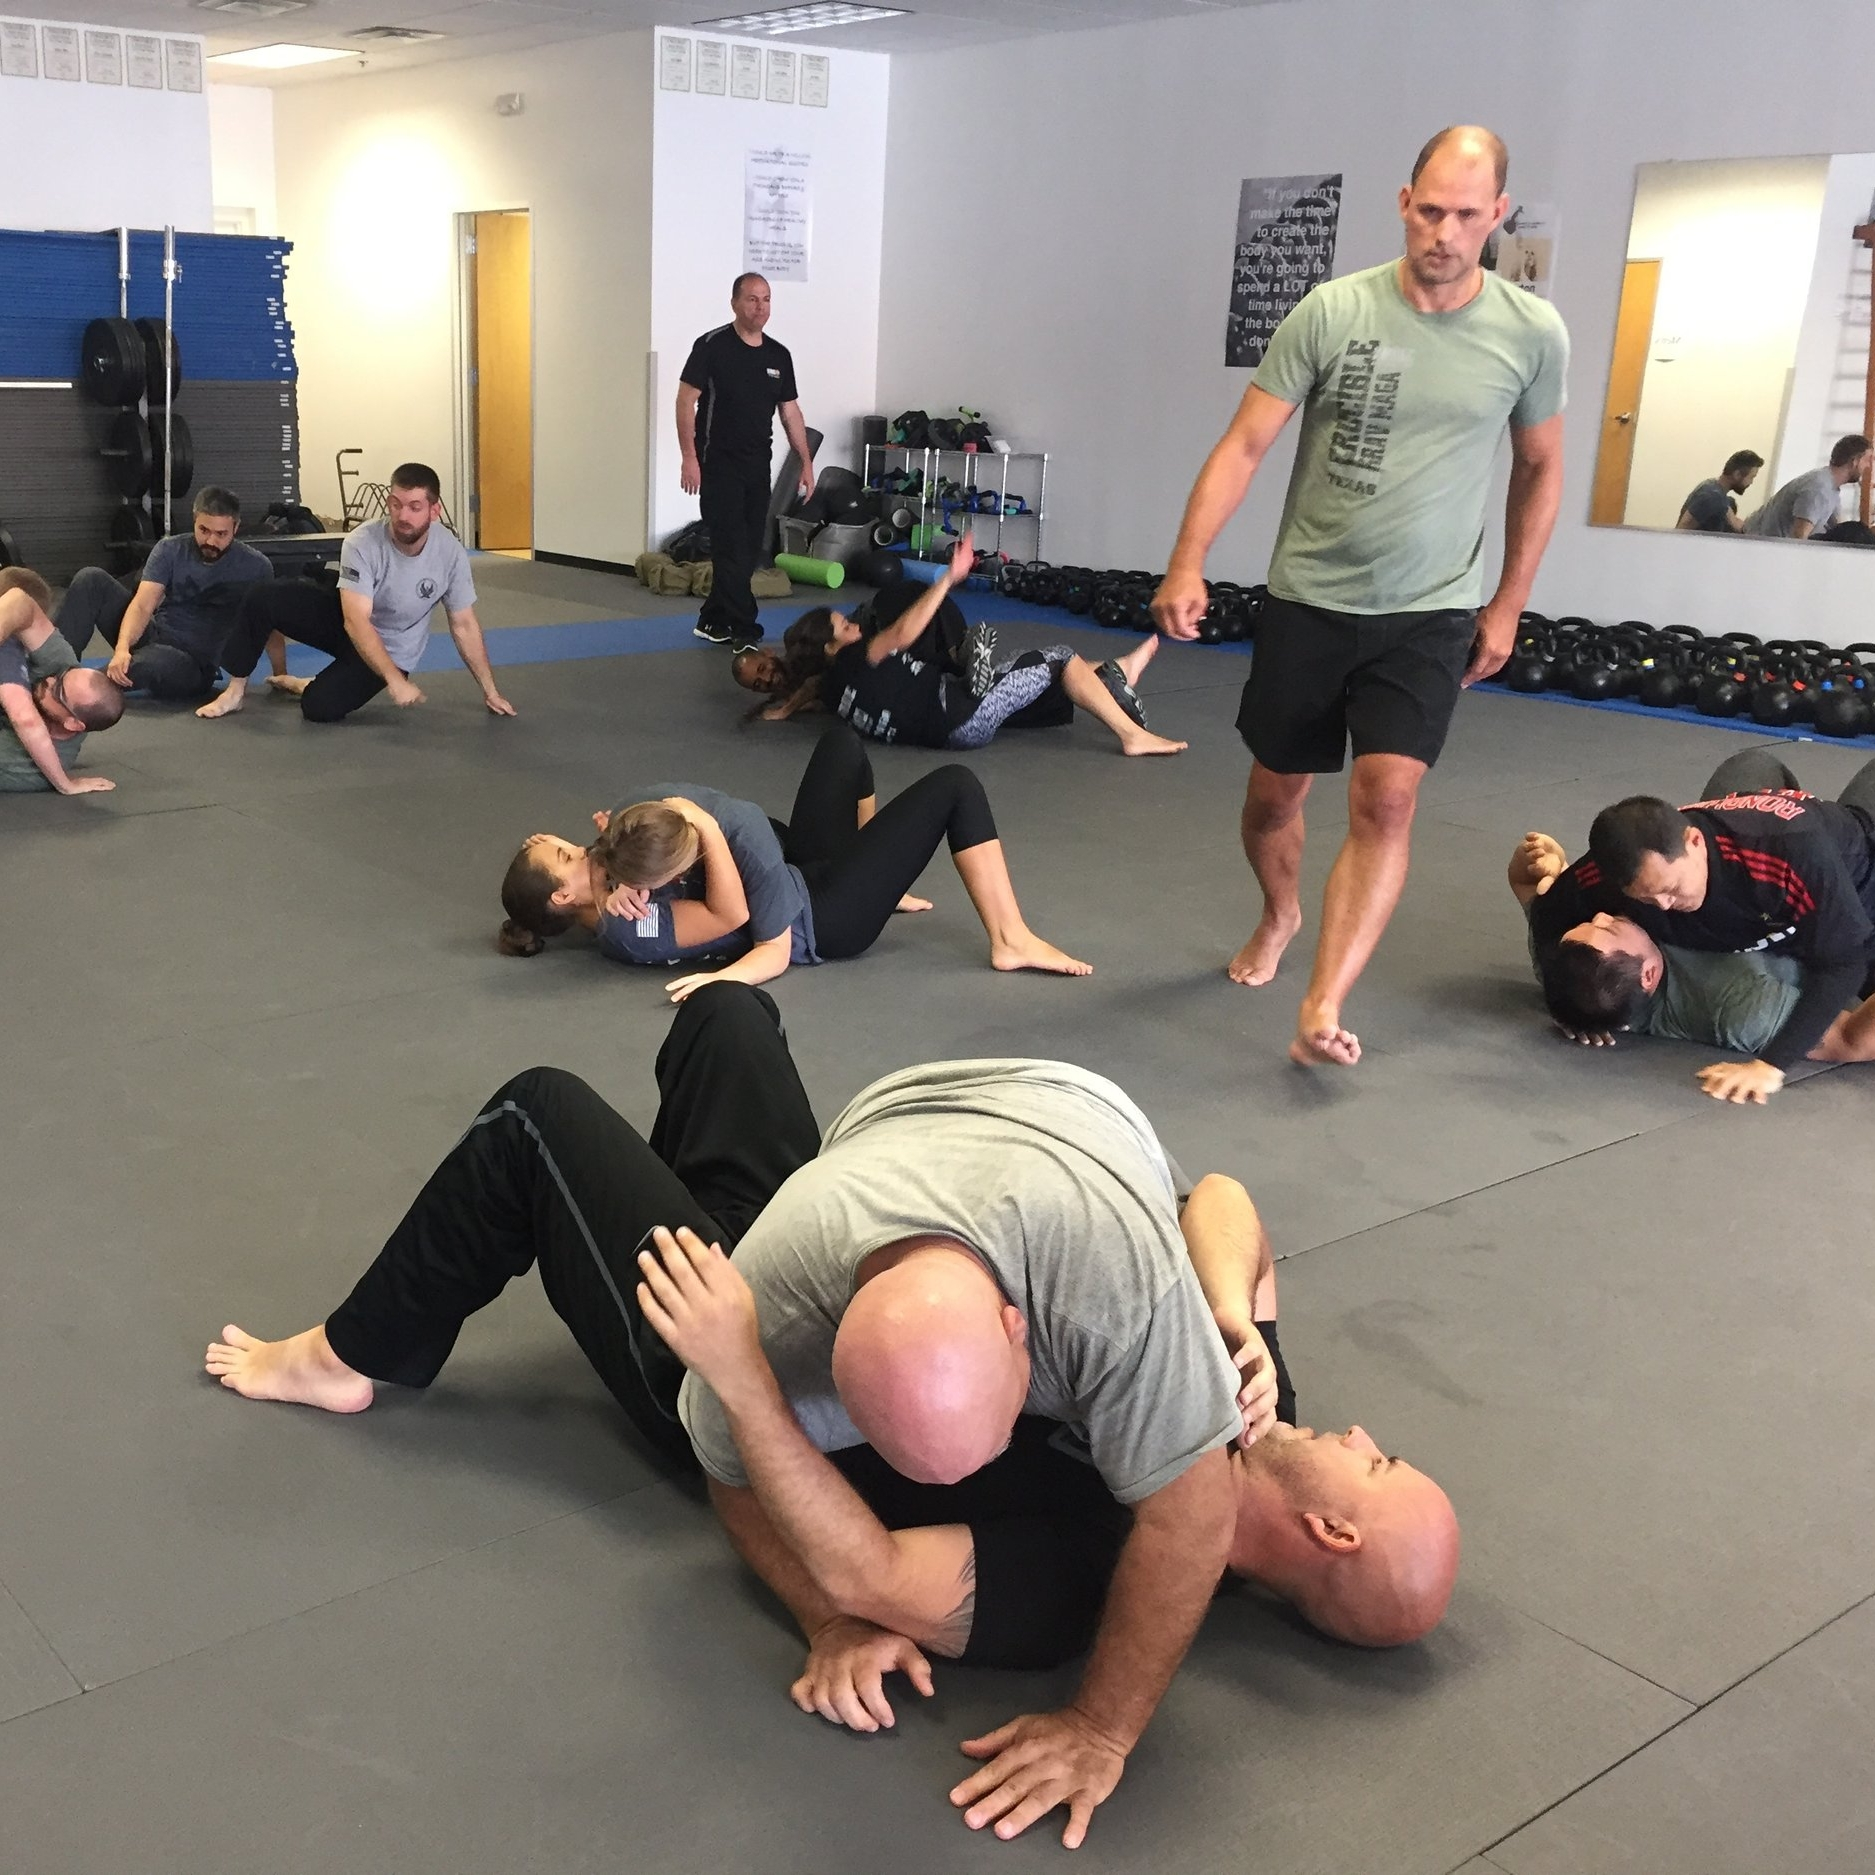 krav maga ground fighting.jpg